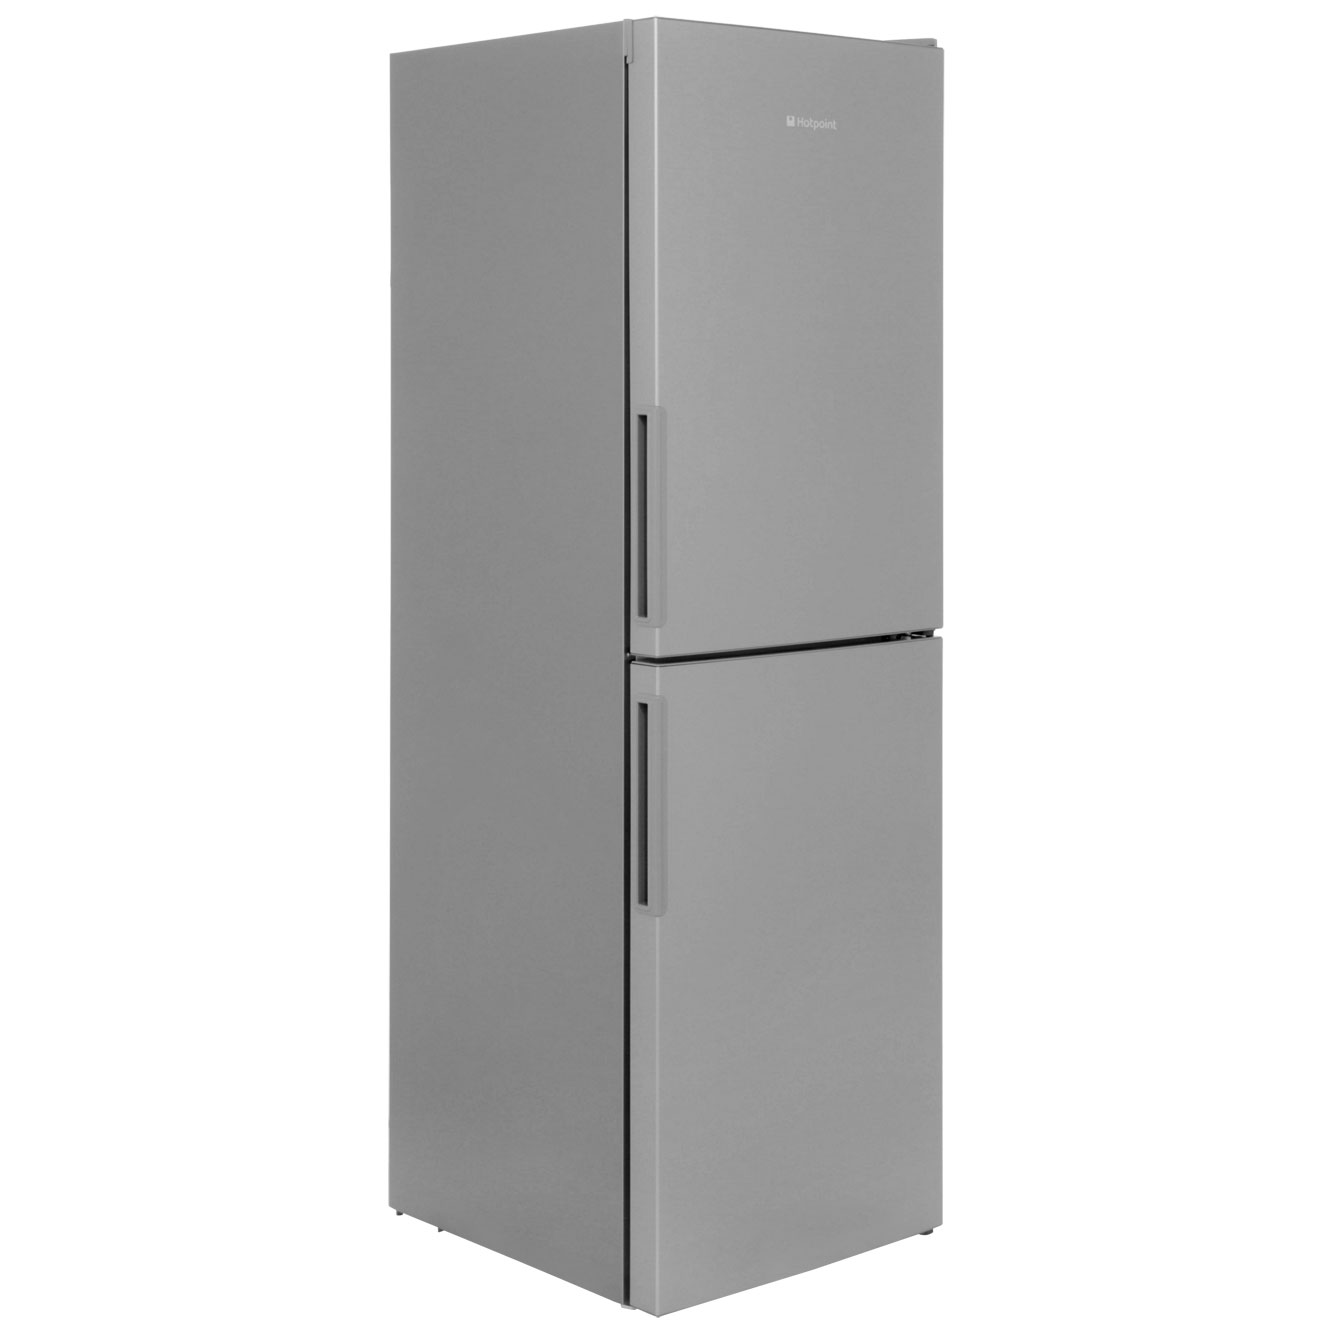 Hotpoint XAO85TIG Free Standing Fridge Freezer Frost Free in Graphite